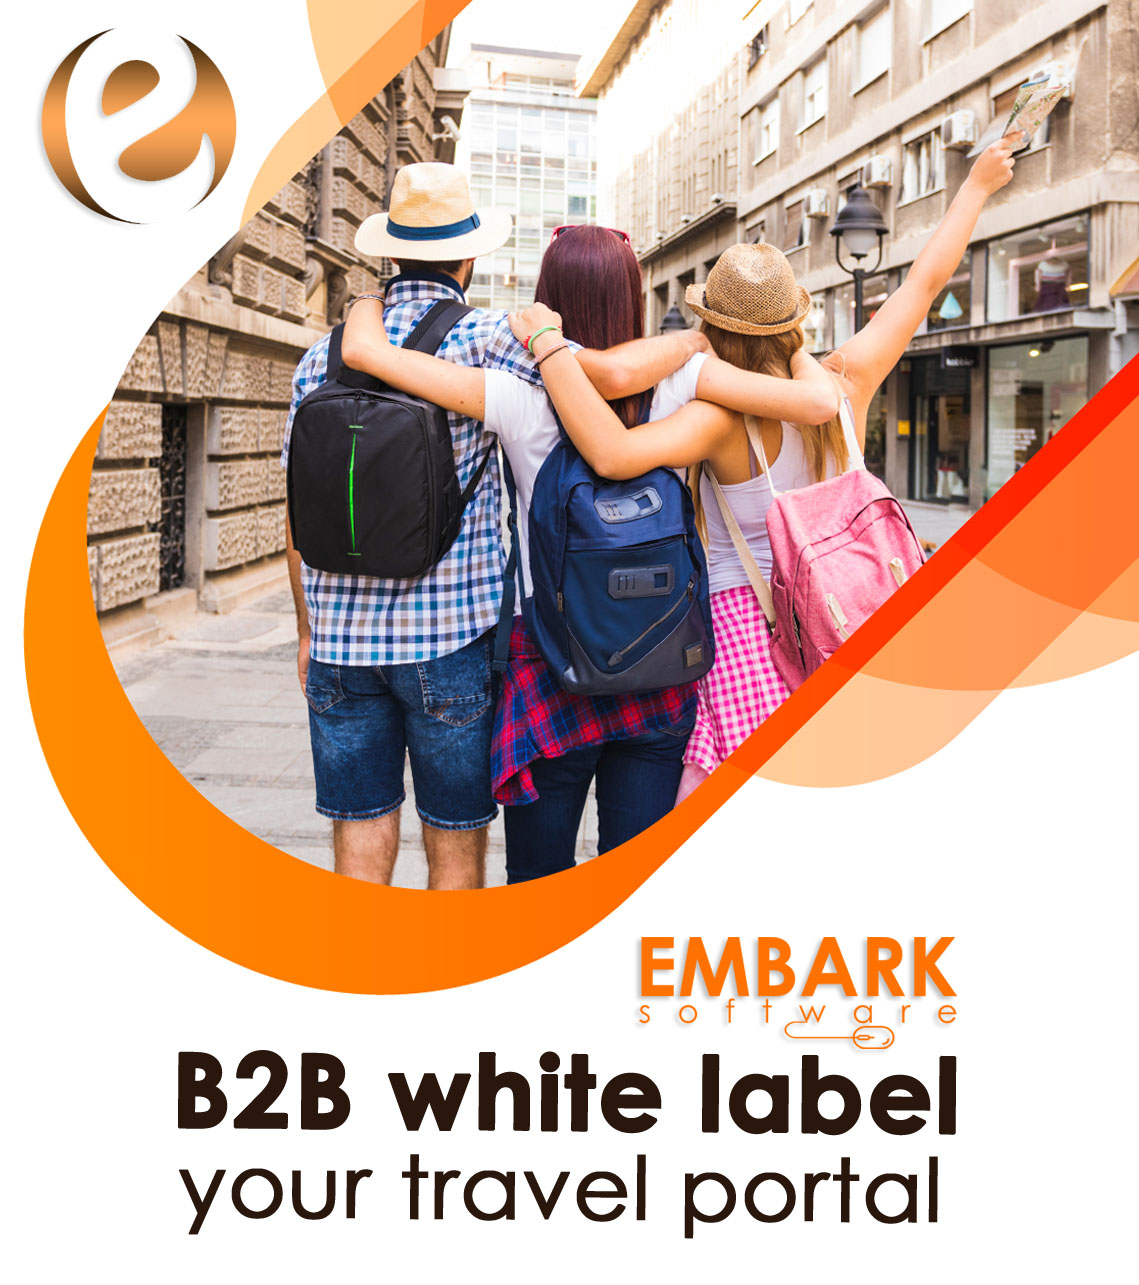 B2B white label adds gratuity to your travel portal